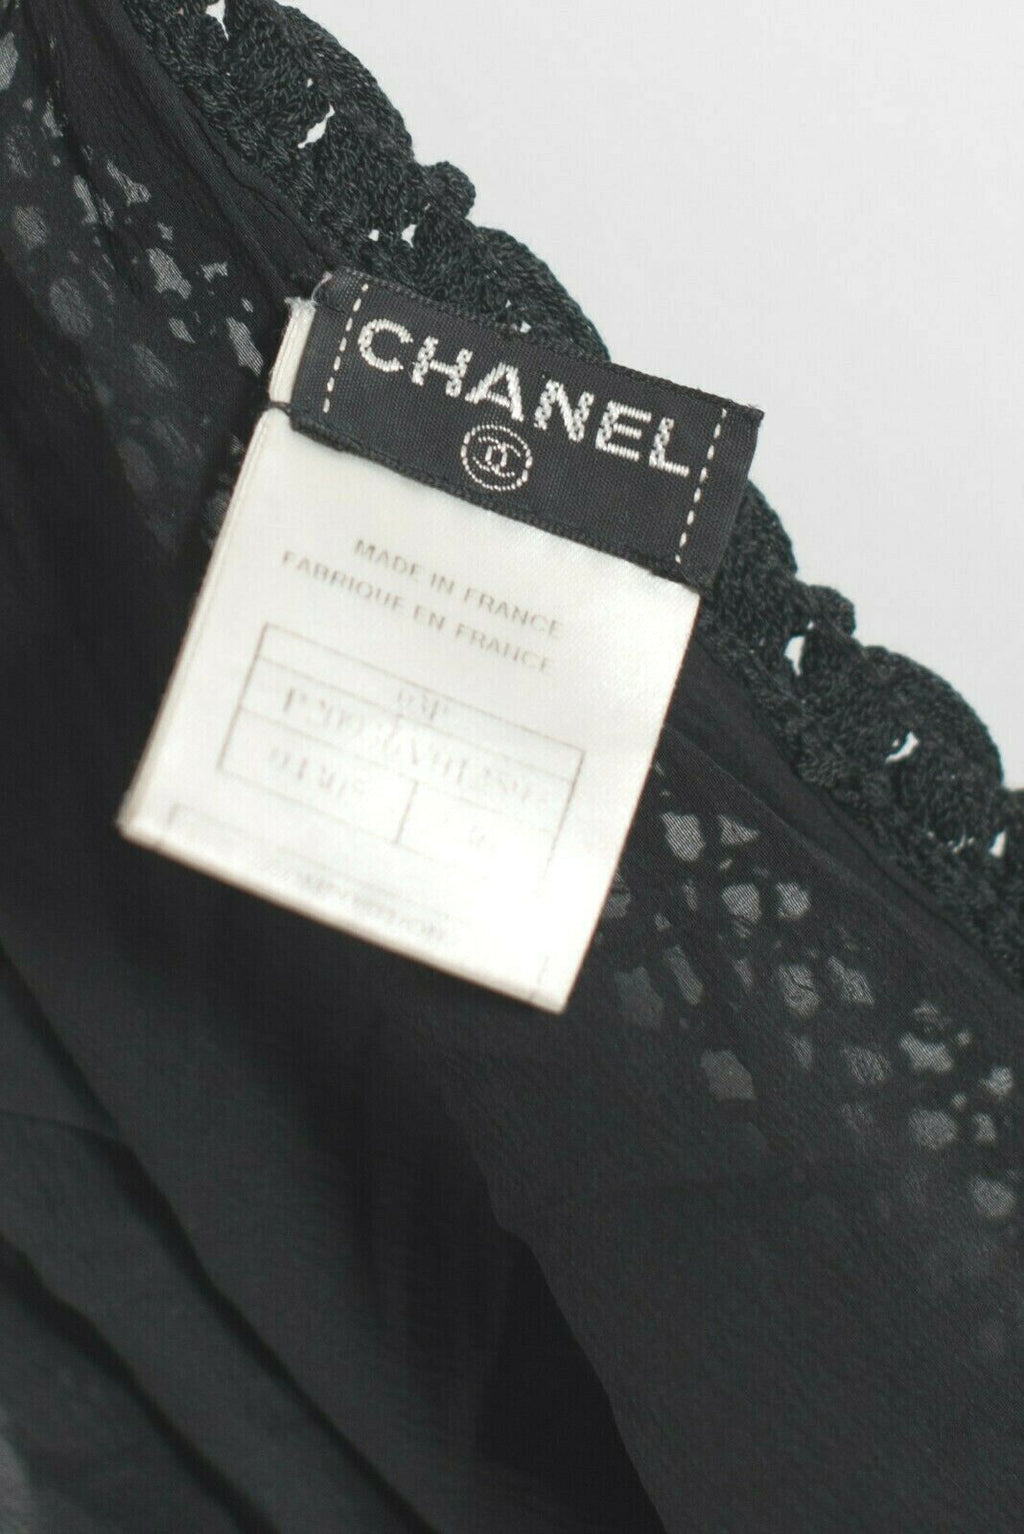 Chanel Womens 36 XS Black Slip Dress Crochet Lined Knit Mesh Mini 03P Collection